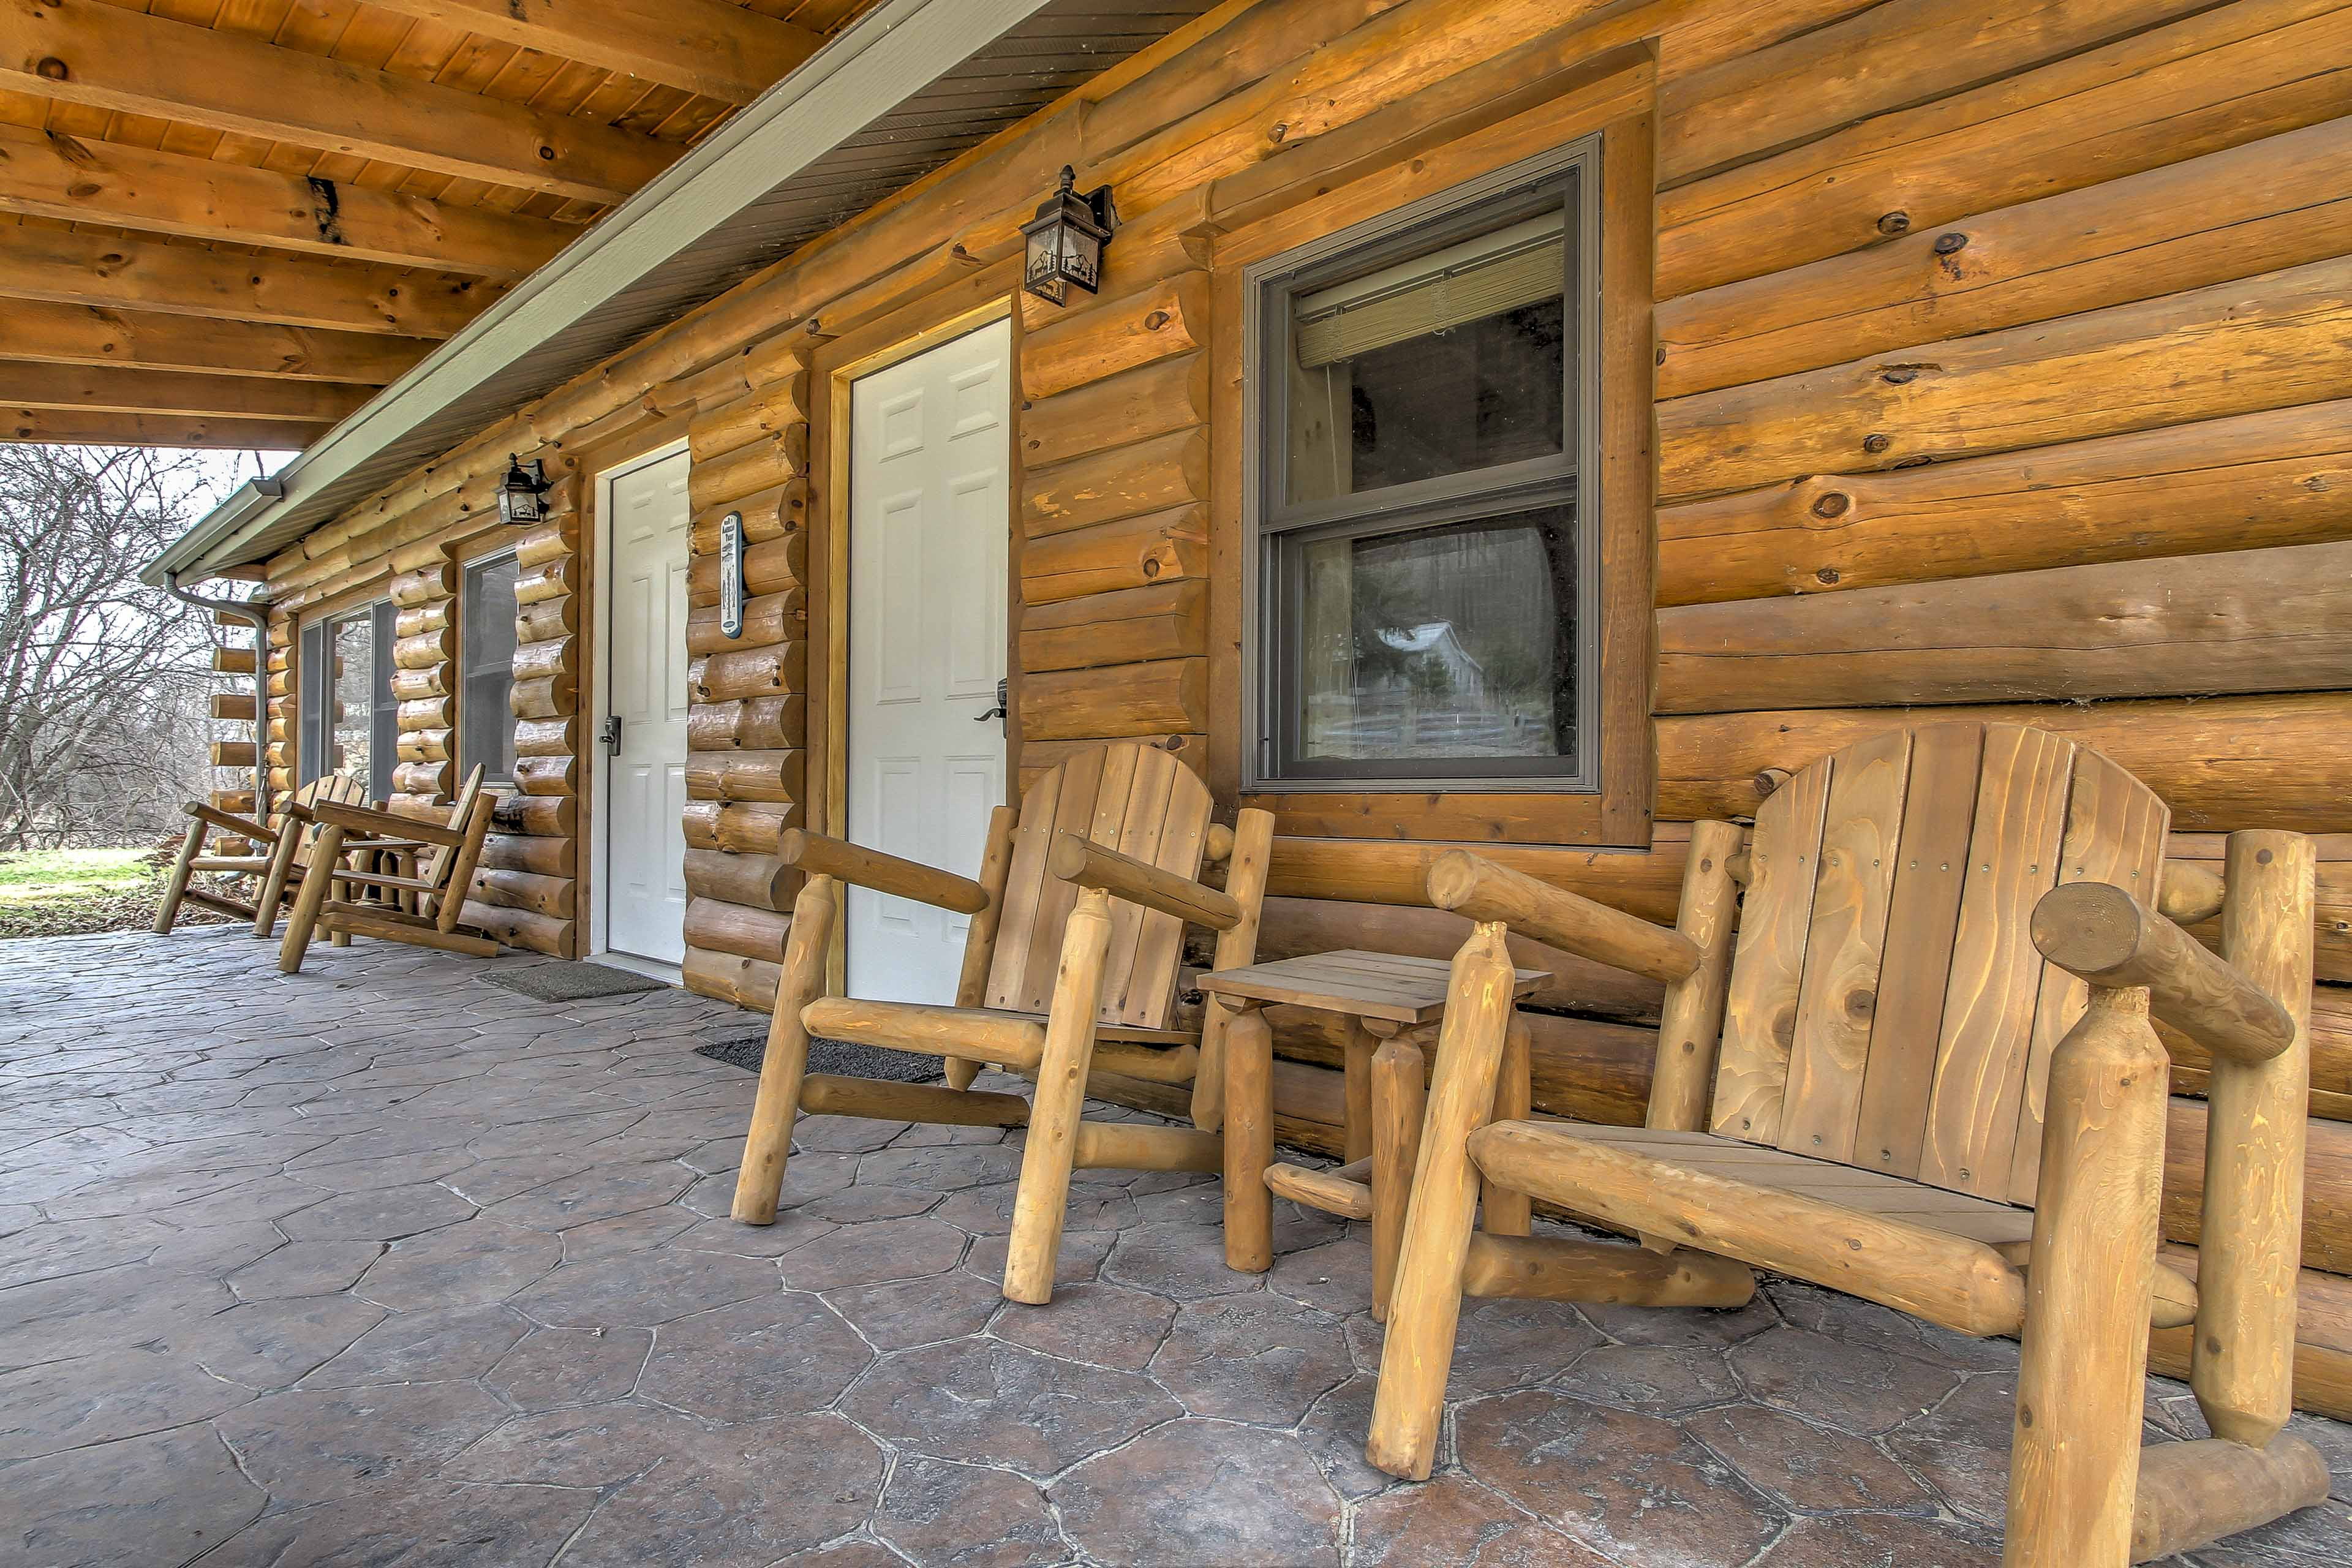 Breathe in the fresh air from the front patio with seating.